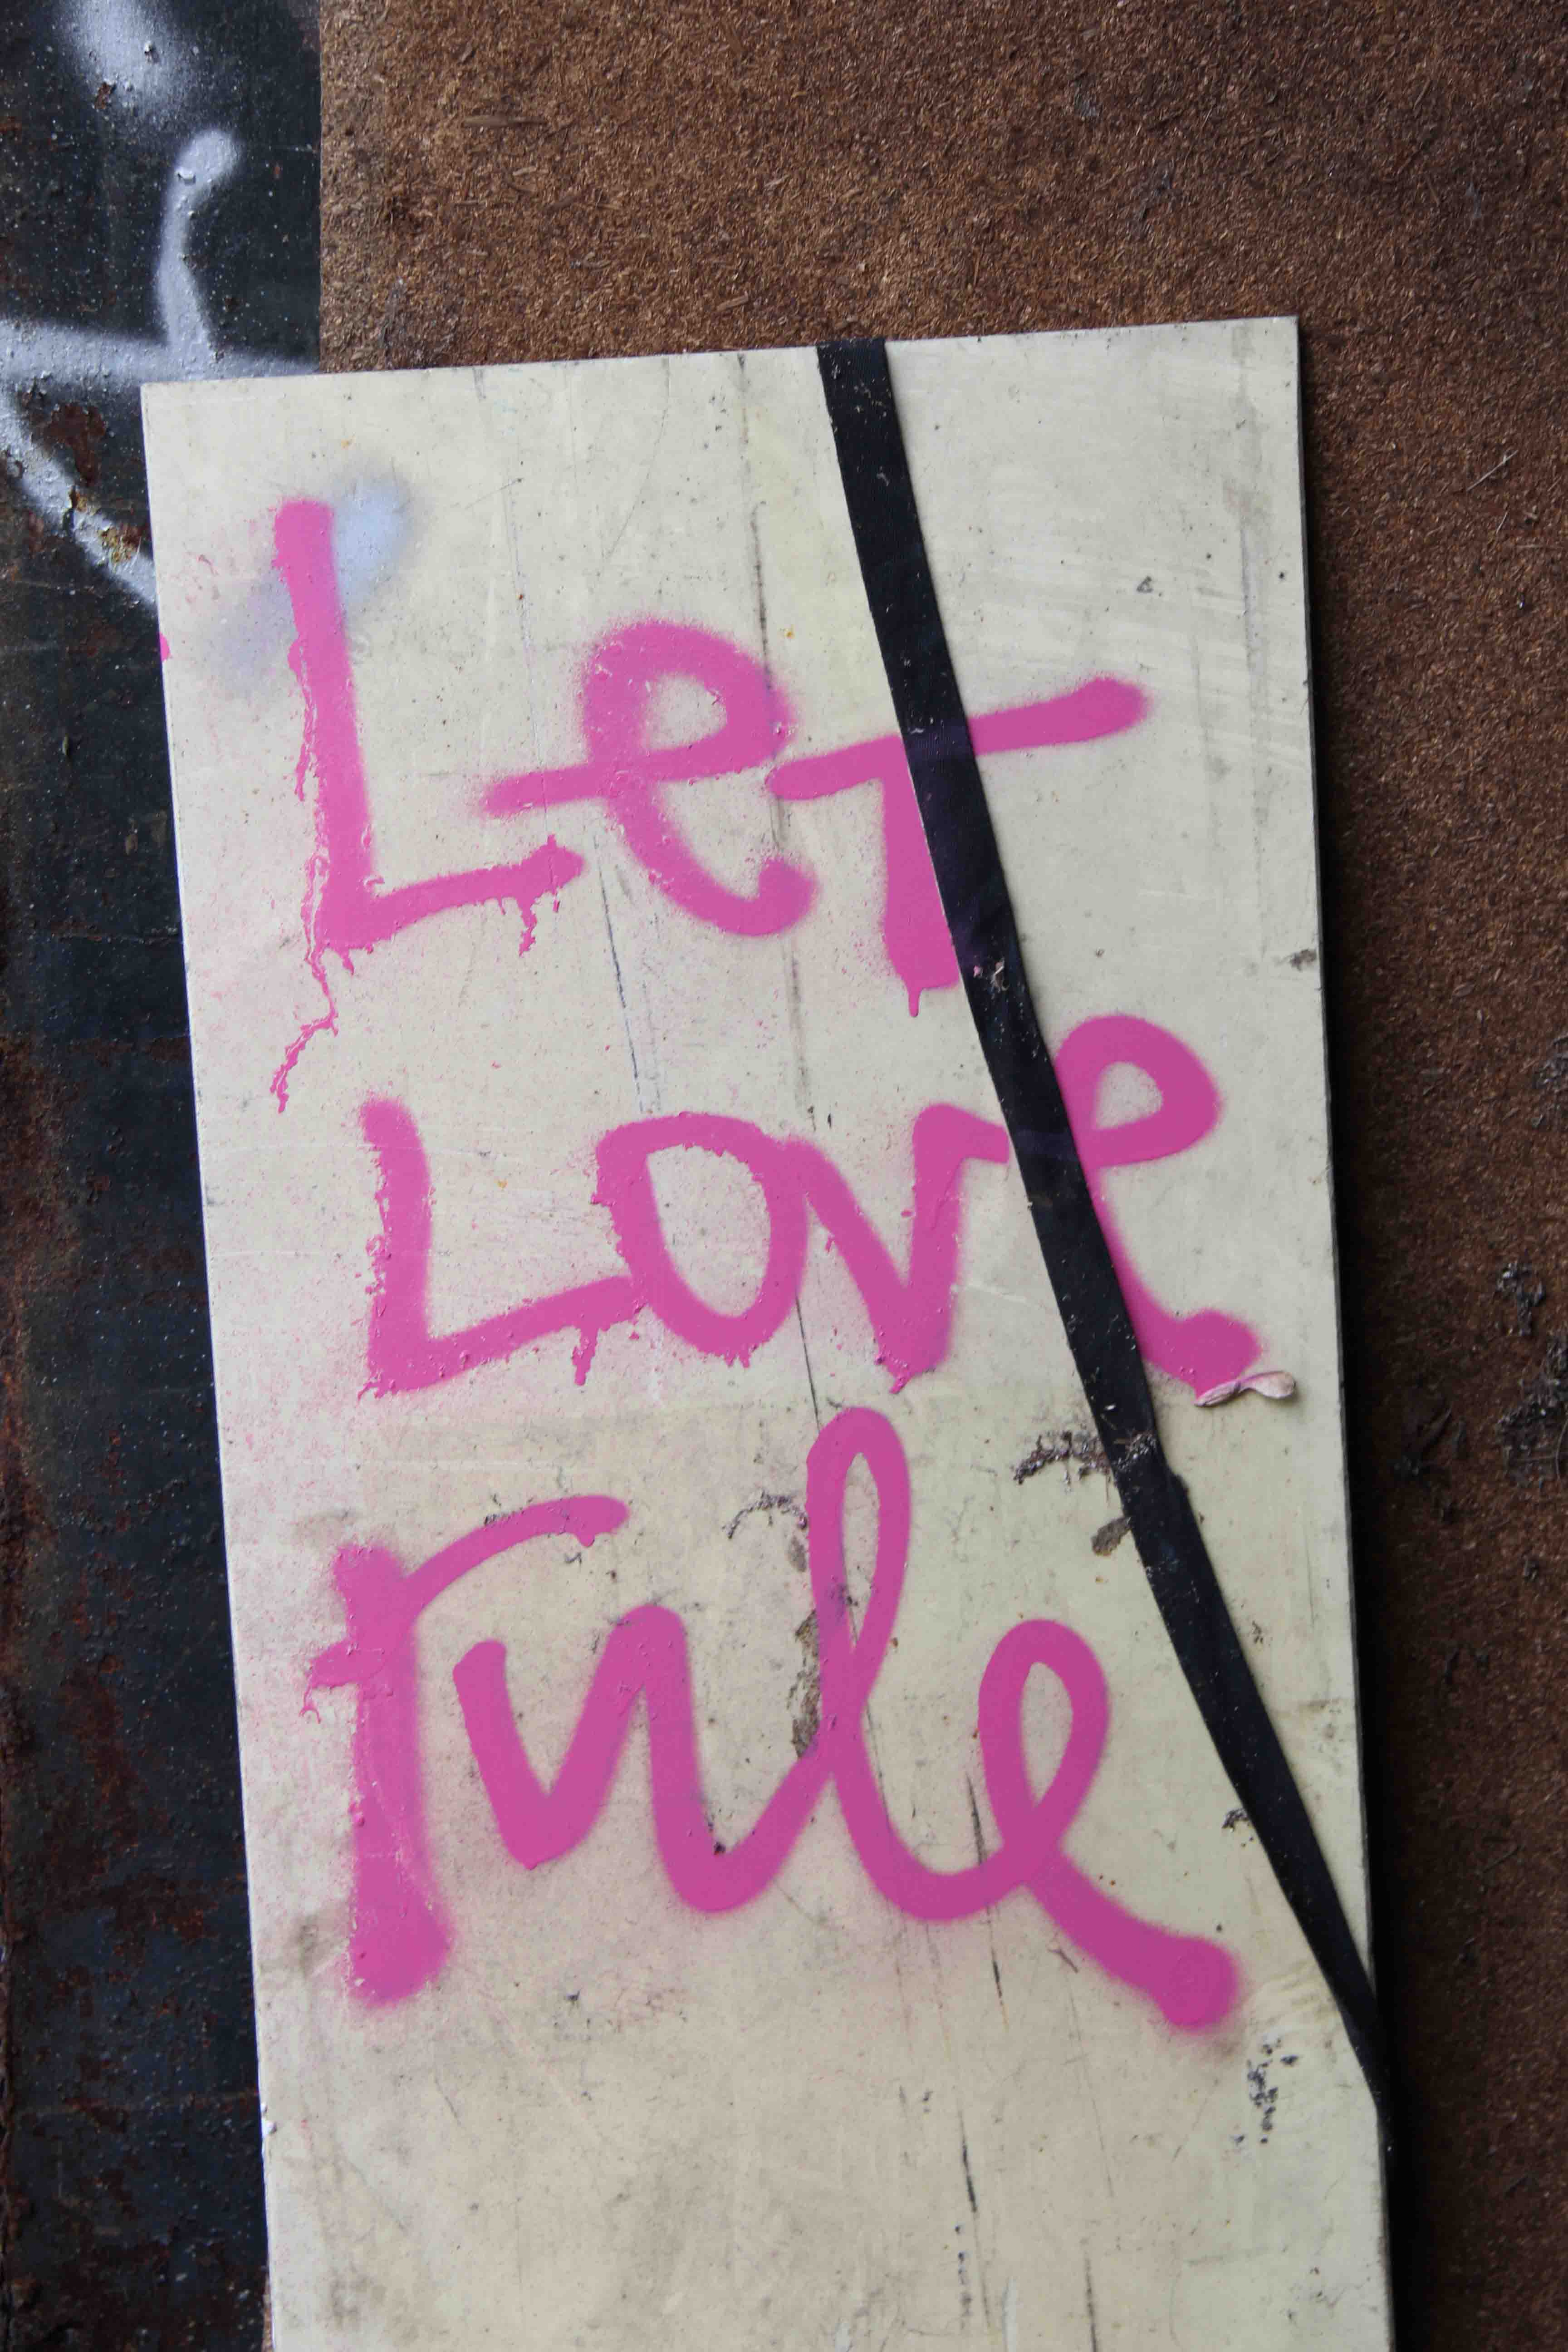 Let Love Rule - Graffiti by Unknown Artist at Bärenquell Brauerei - an abandoned brewery in Berlin